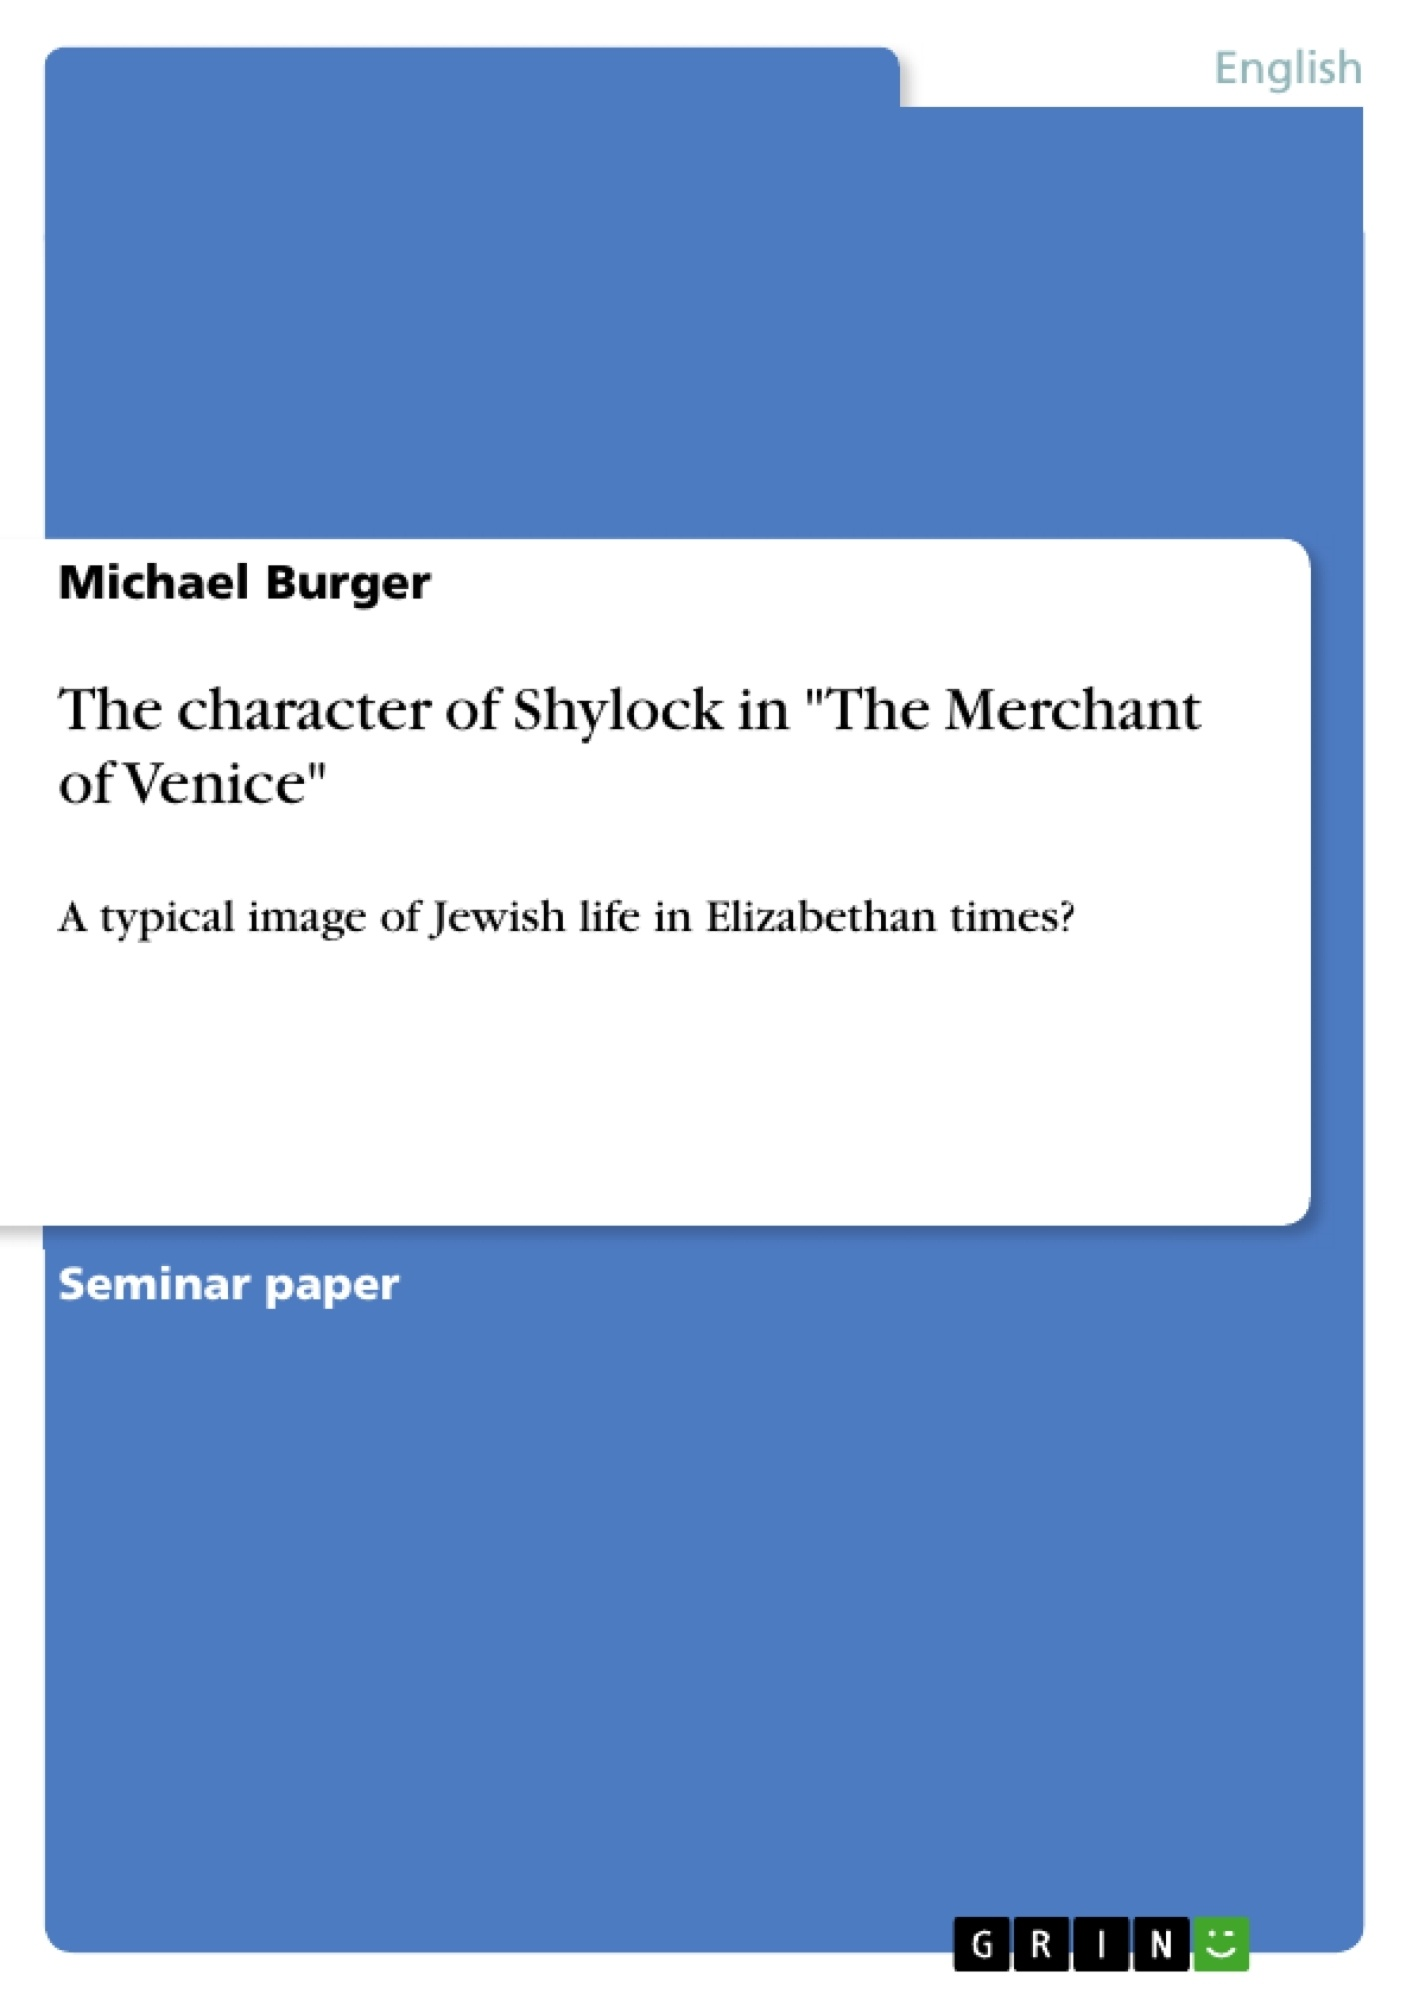 merchant of venice essay on shylock the character of shylock in  the character of shylock in the merchant of venice publish upload your own papers earn money